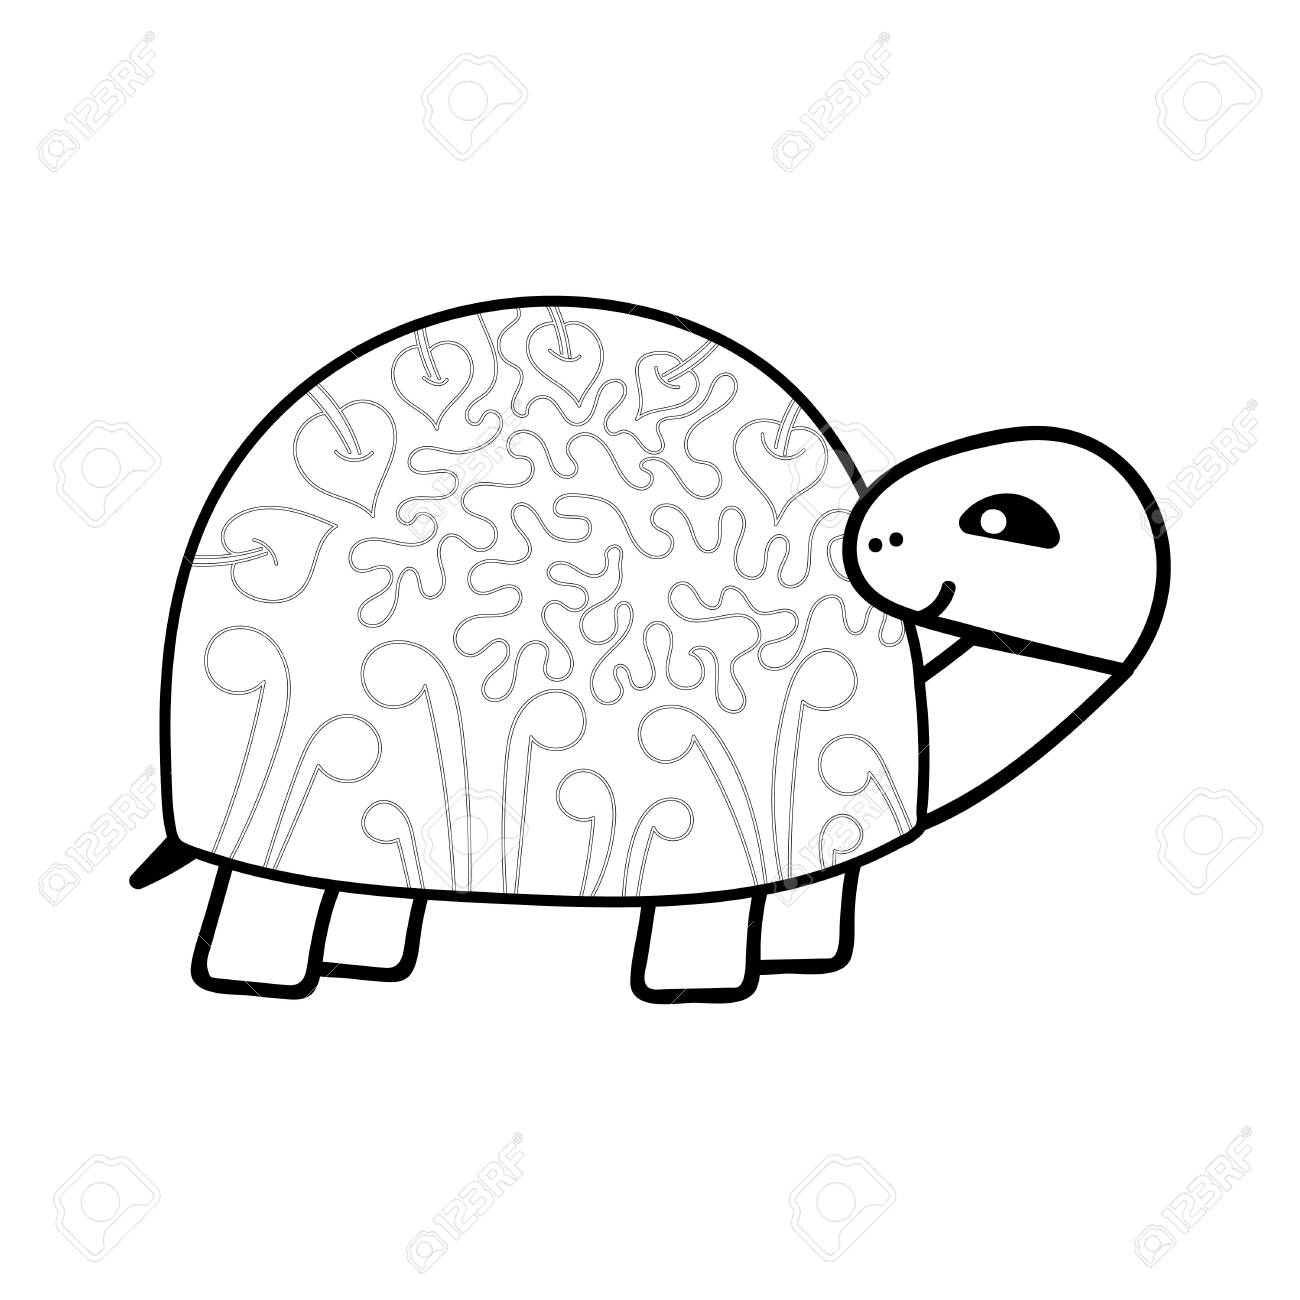 Hand Drawn Coloring Book A Cute Turtle Anti Stress Coloring Royalty Free Cliparts Vectors And Stock Illustration Image 145477274